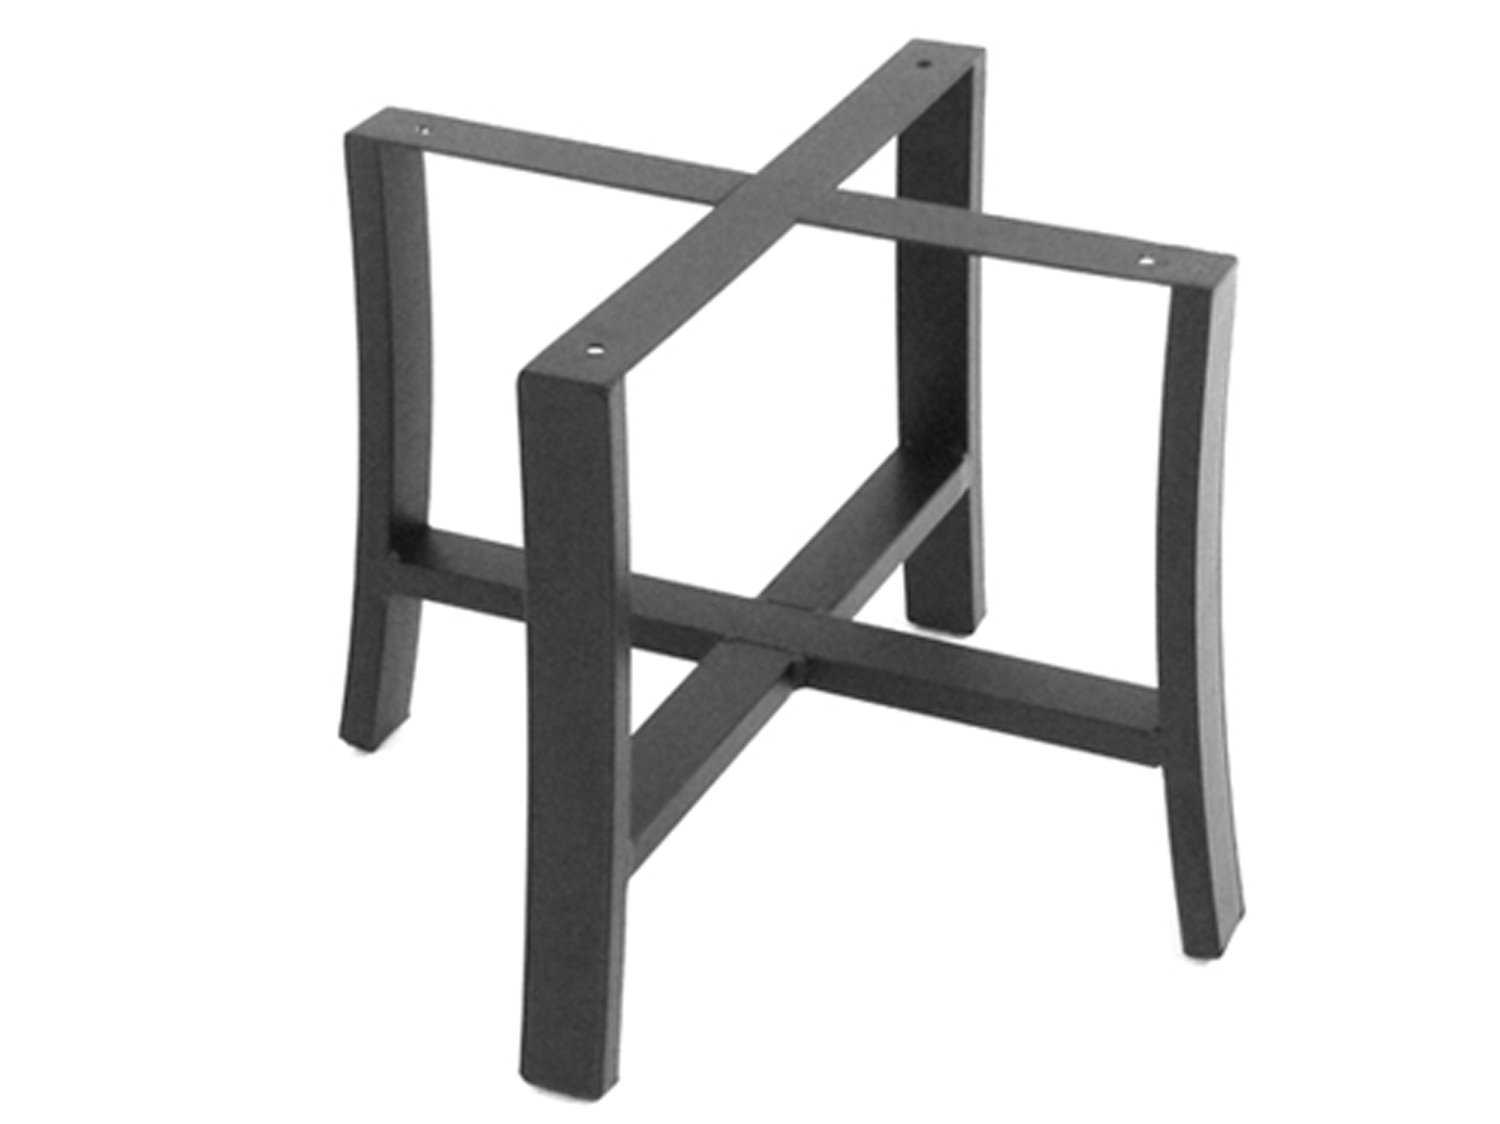 Meadowcraft maddux wrought iron end table base 4412370 01 for Side table base